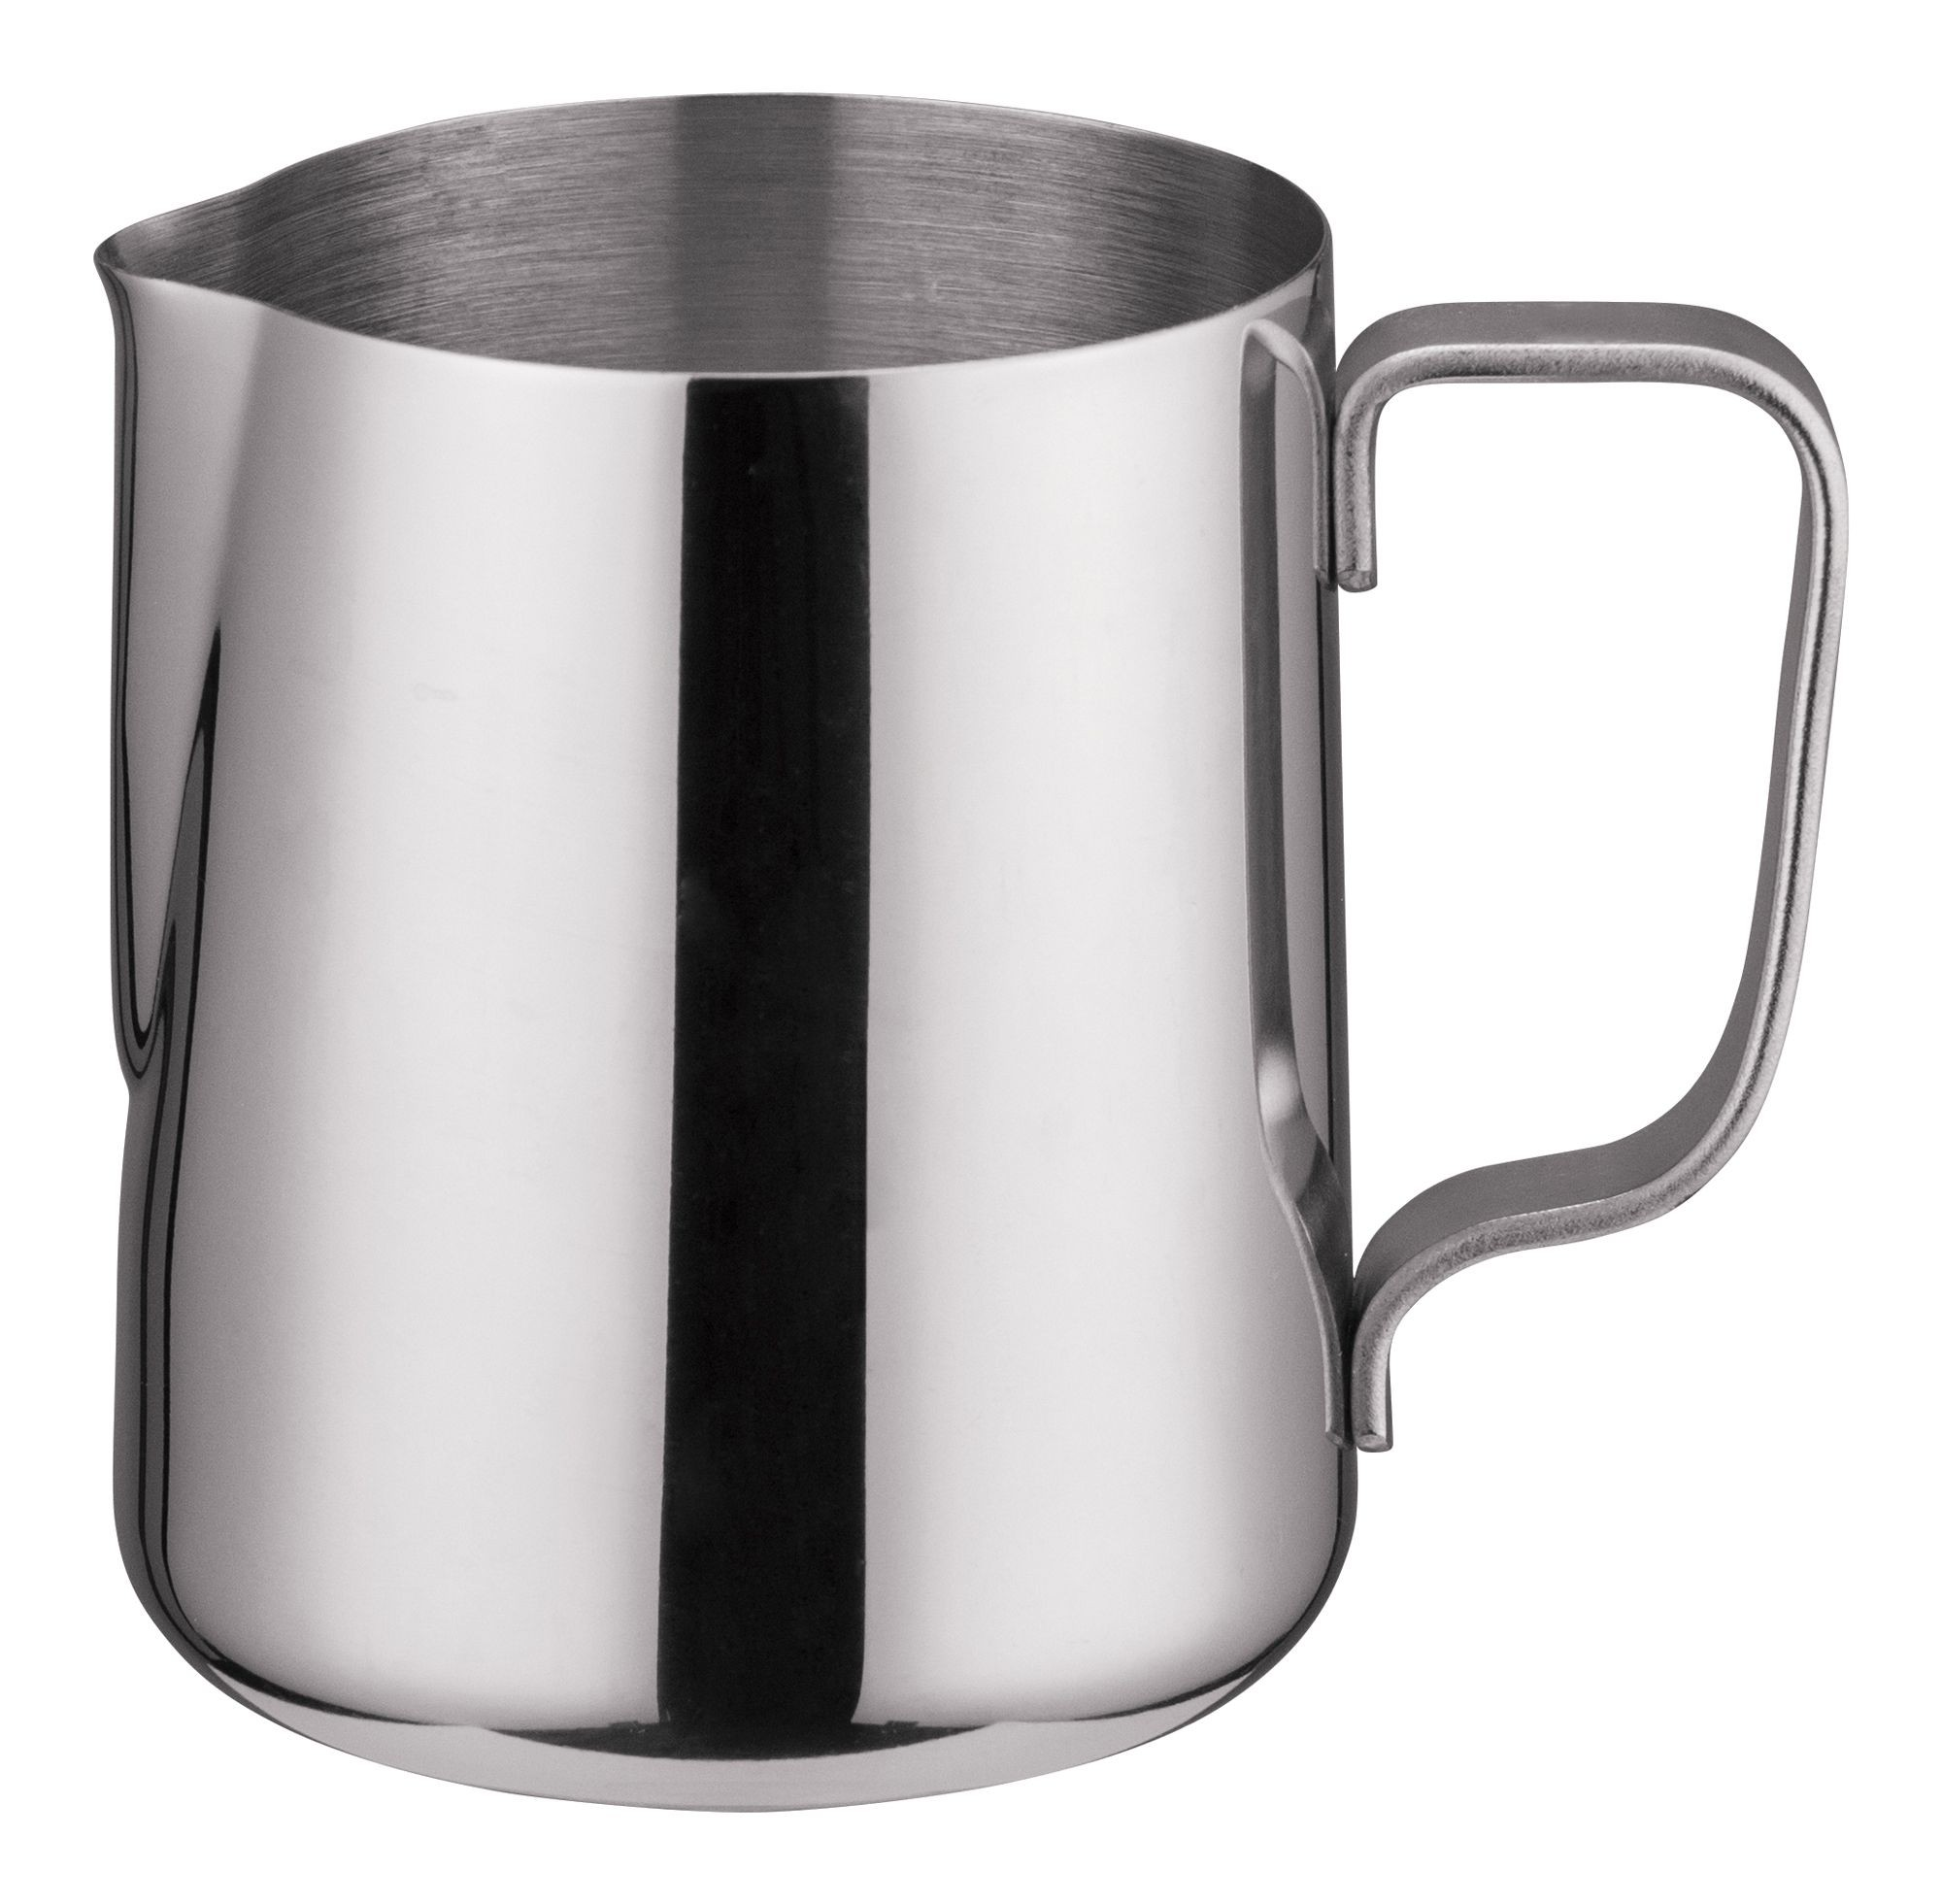 Winco WP-20 Stainless Steel 20 oz. Frothing Pitcher